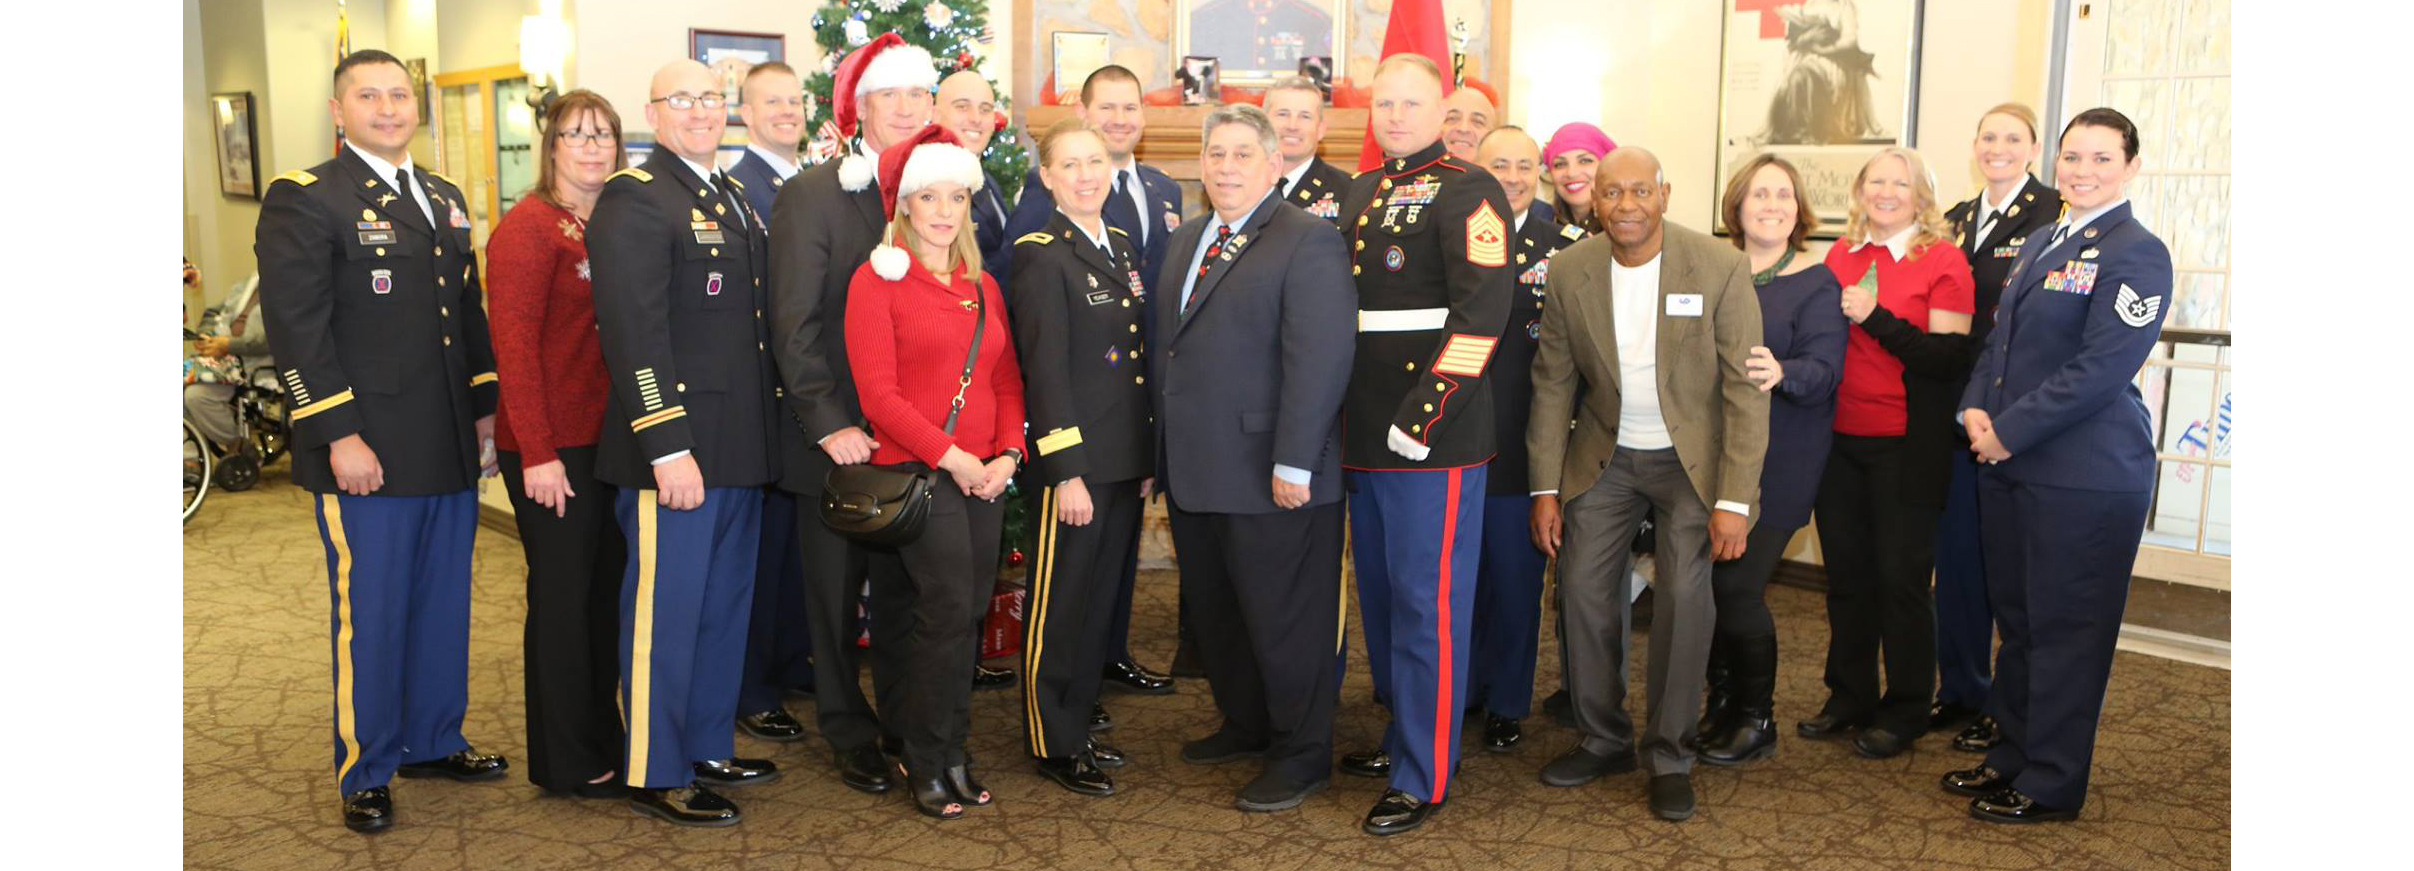 JTF-N Delivers Holiday Gifts to Veteran's Home